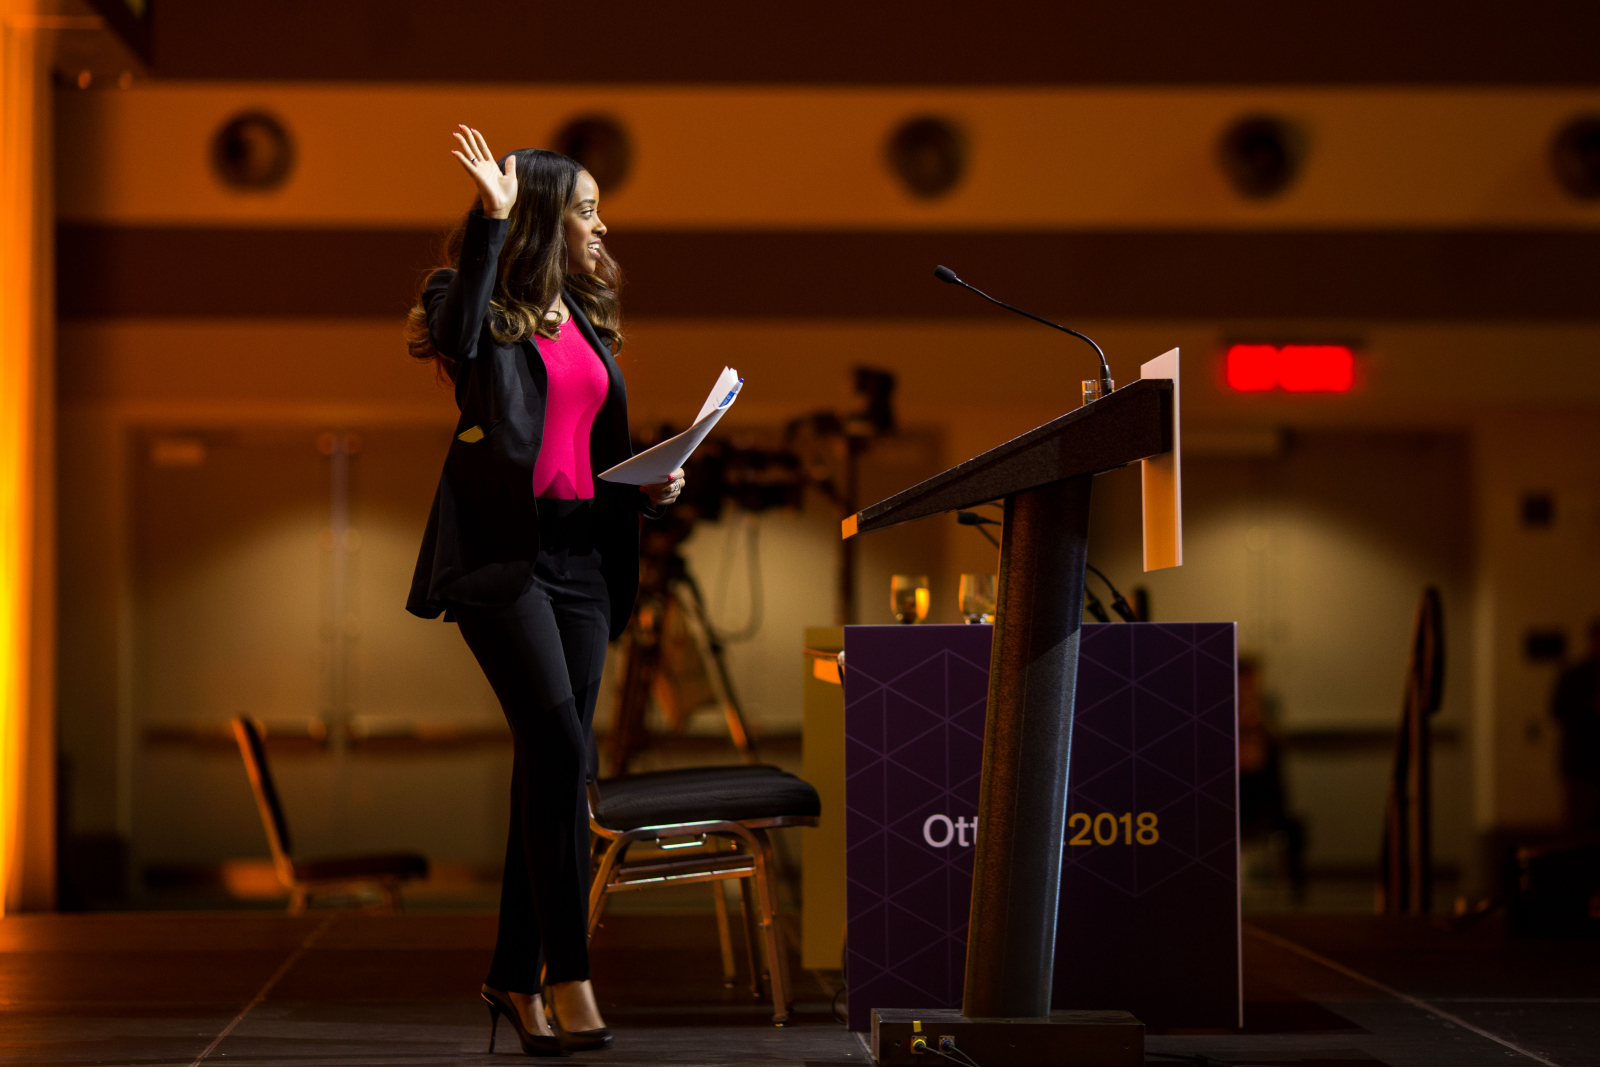 Women's March on Washington co-organizer Tamika Mallory was a keynote speaker during the NDP's national convention on Feb. 16, 2018. Photo by Alex Tétreault